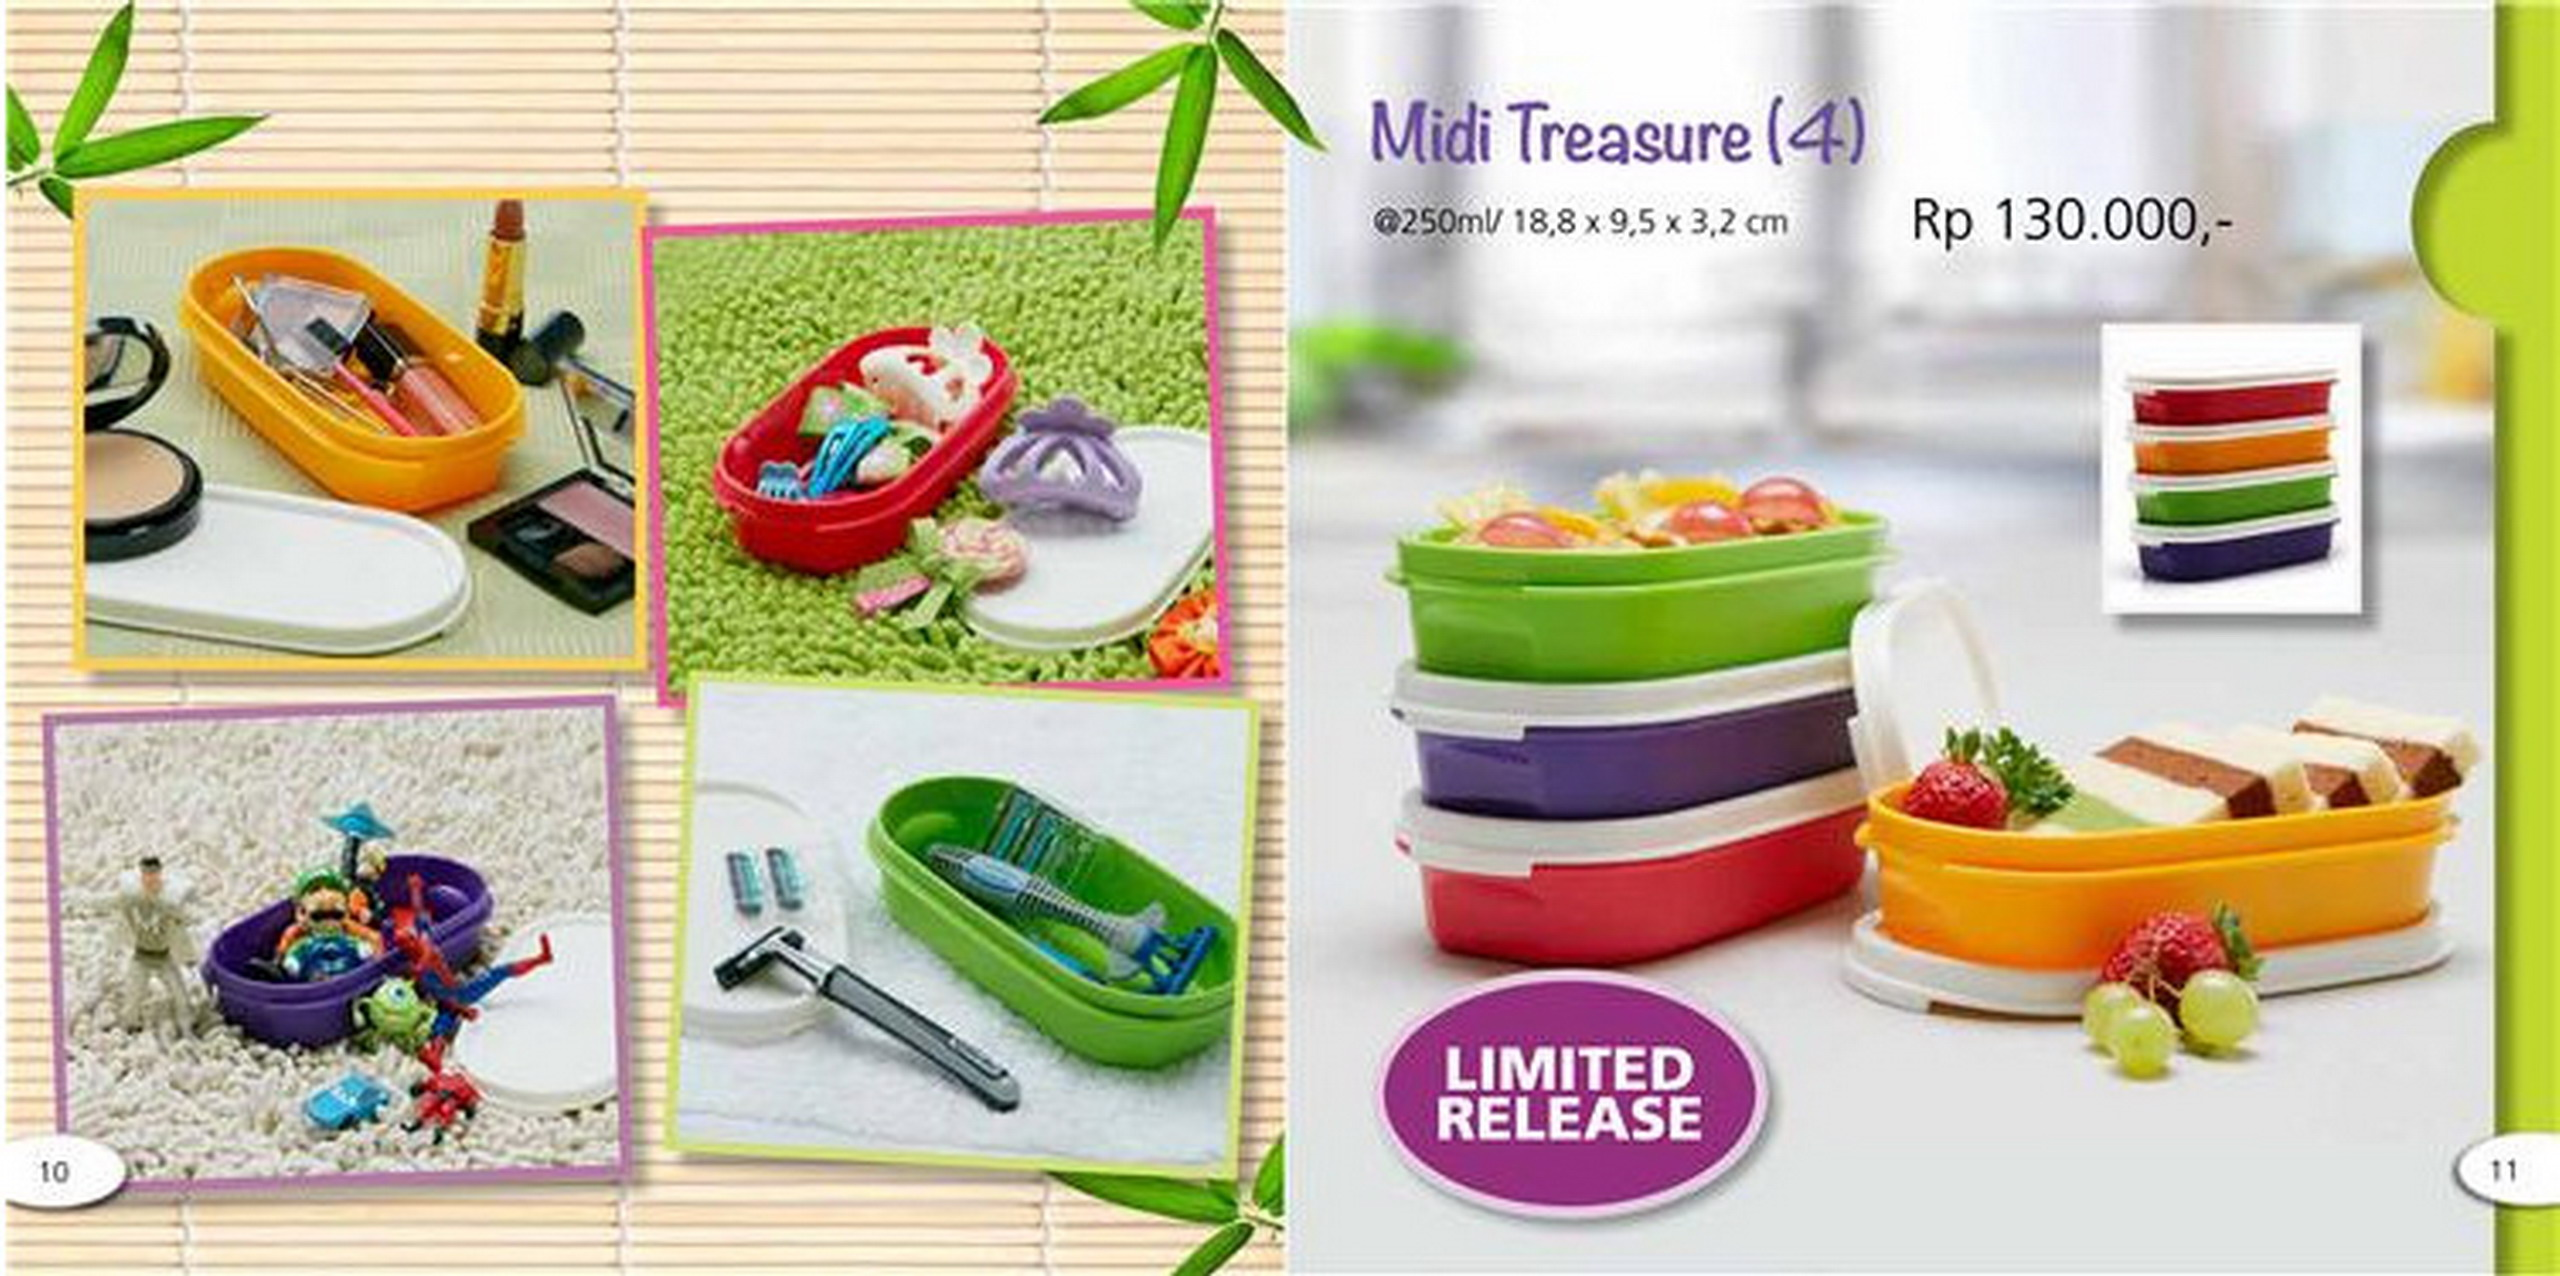 http://freetupperware.files.wordpress.com/2013/08/tupperware-midi-treasure-4.jpg